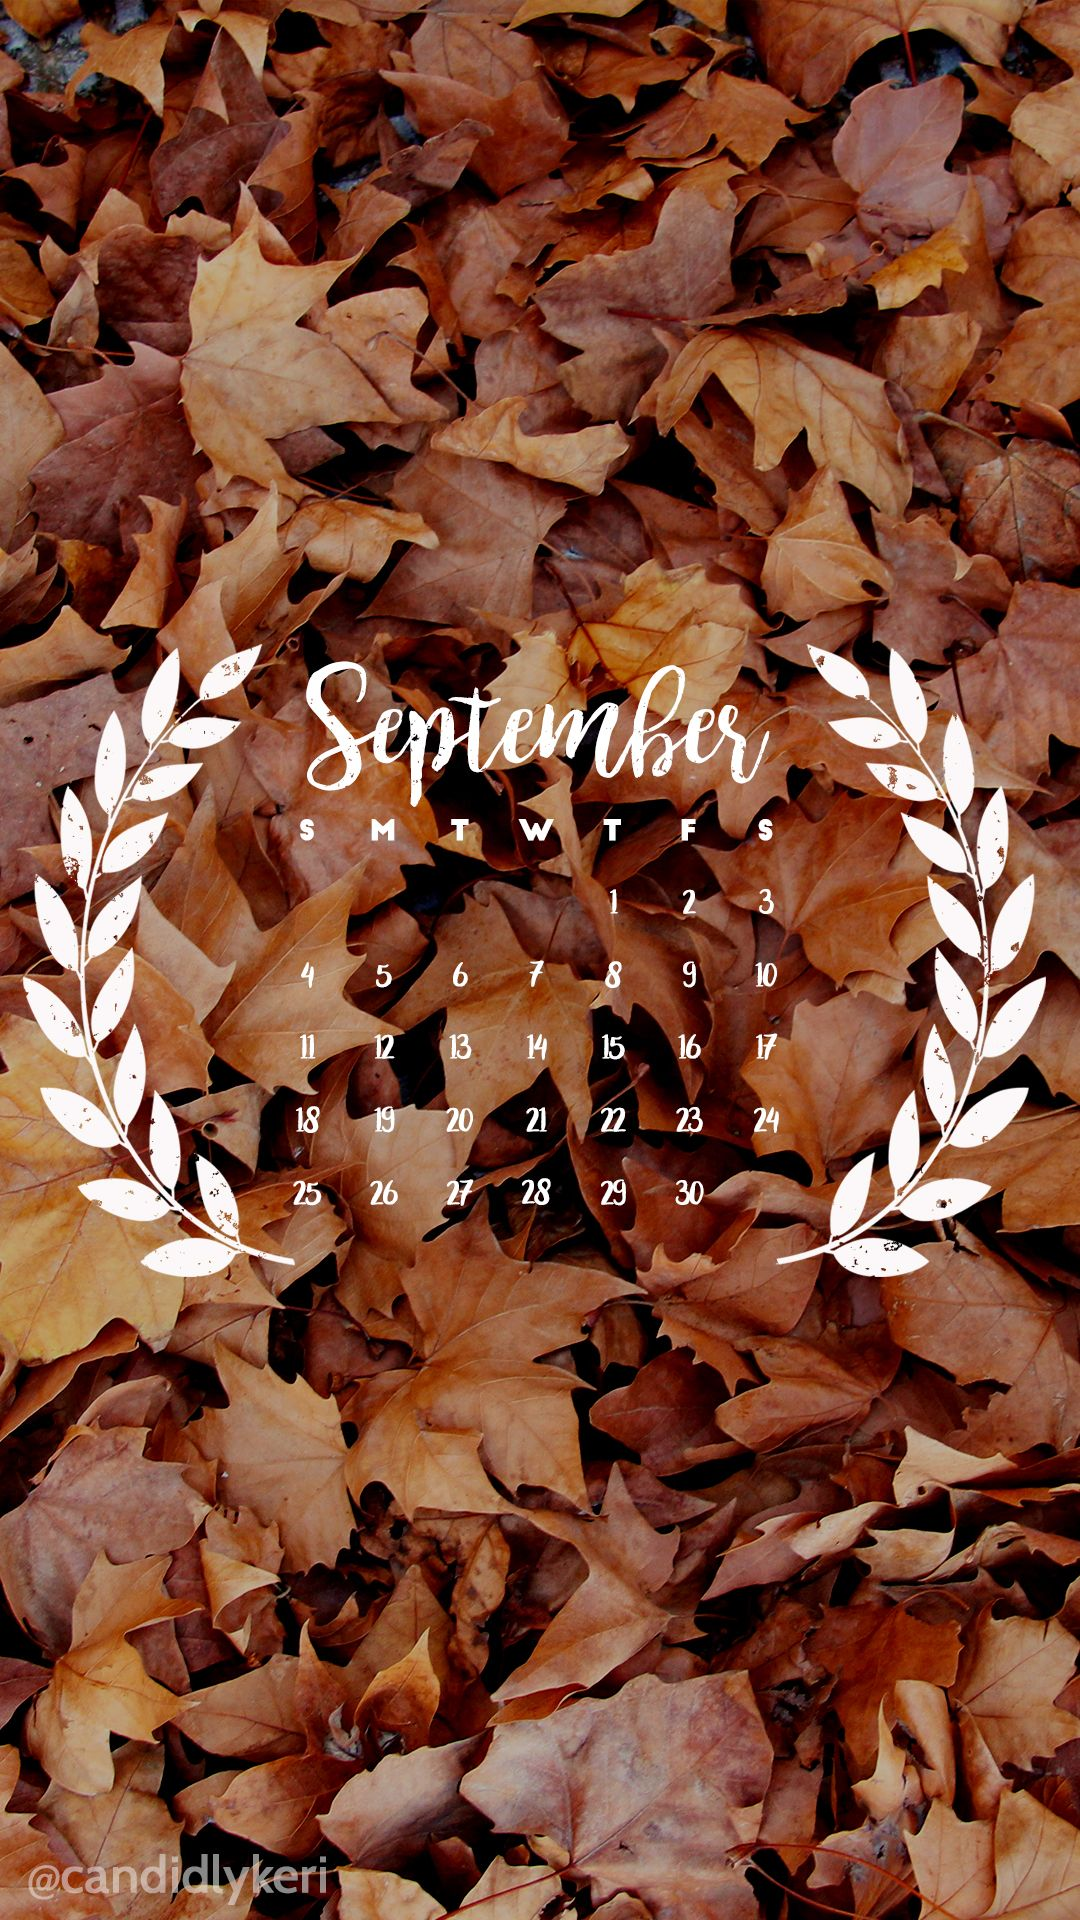 Fall Leaf September Calendar 2016 Wallpaper You Can Download For Free On The Blog For Any Device Mob Cute Fall Wallpaper Fall Wallpaper Iphone Wallpaper Fall